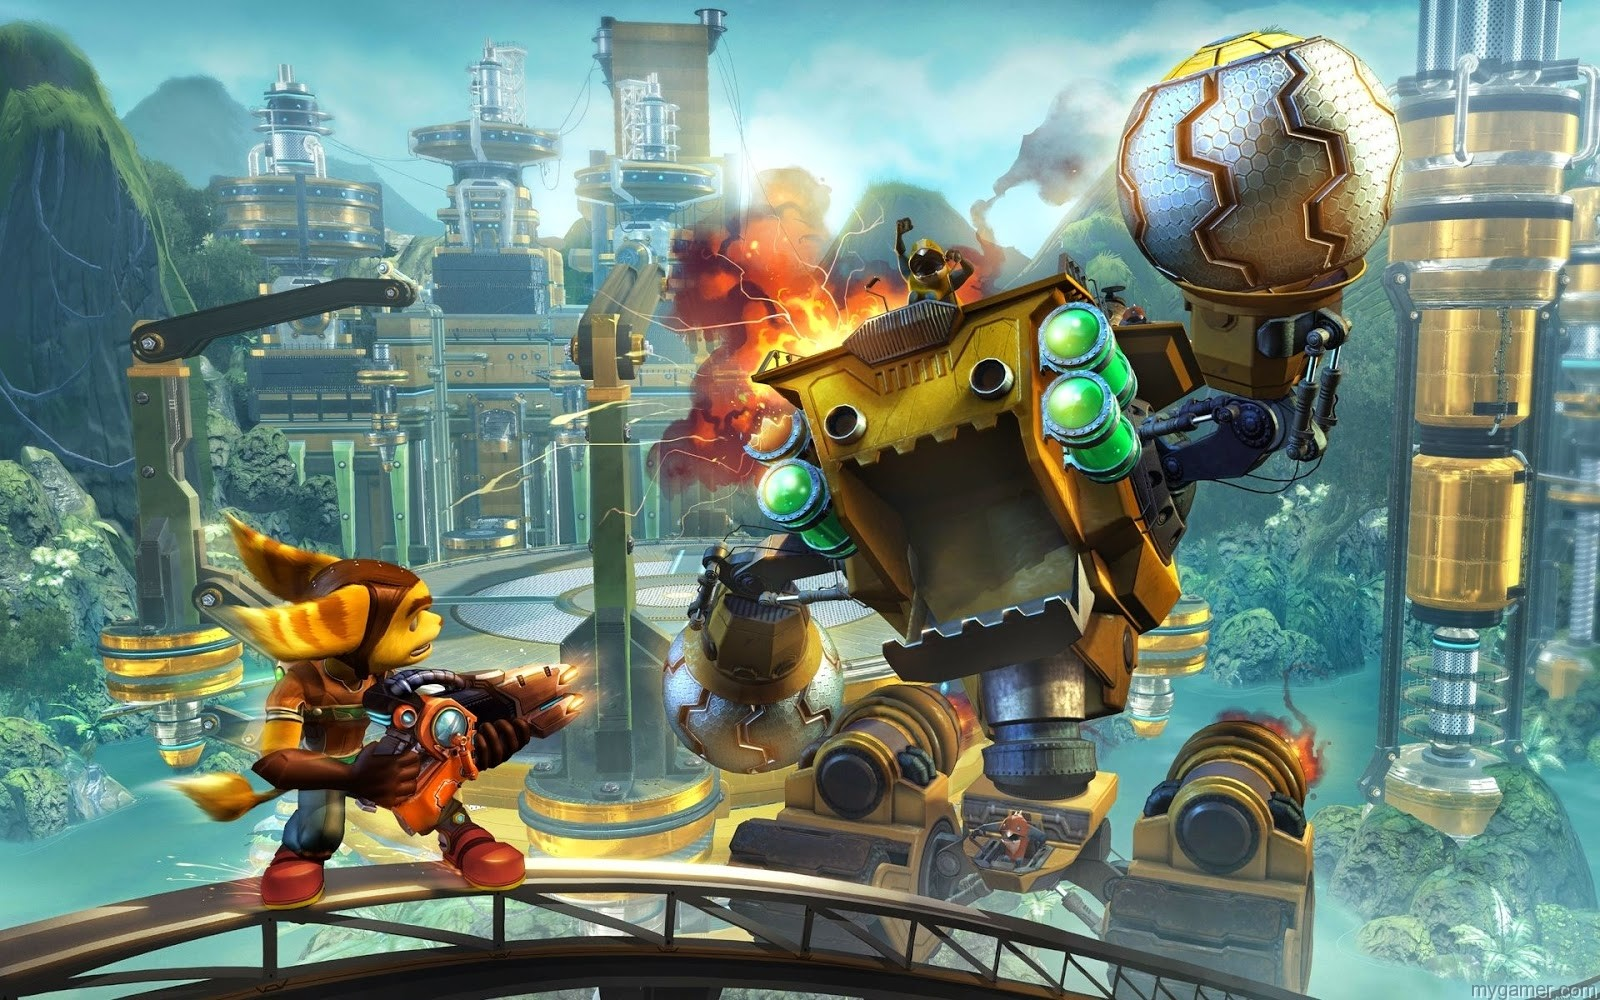 gameplay in new Ratchet & Clank for PS4 Ratchet & Clank (PS4) Preview Ratchet & Clank (PS4) Preview ratchet and clank wallpaper